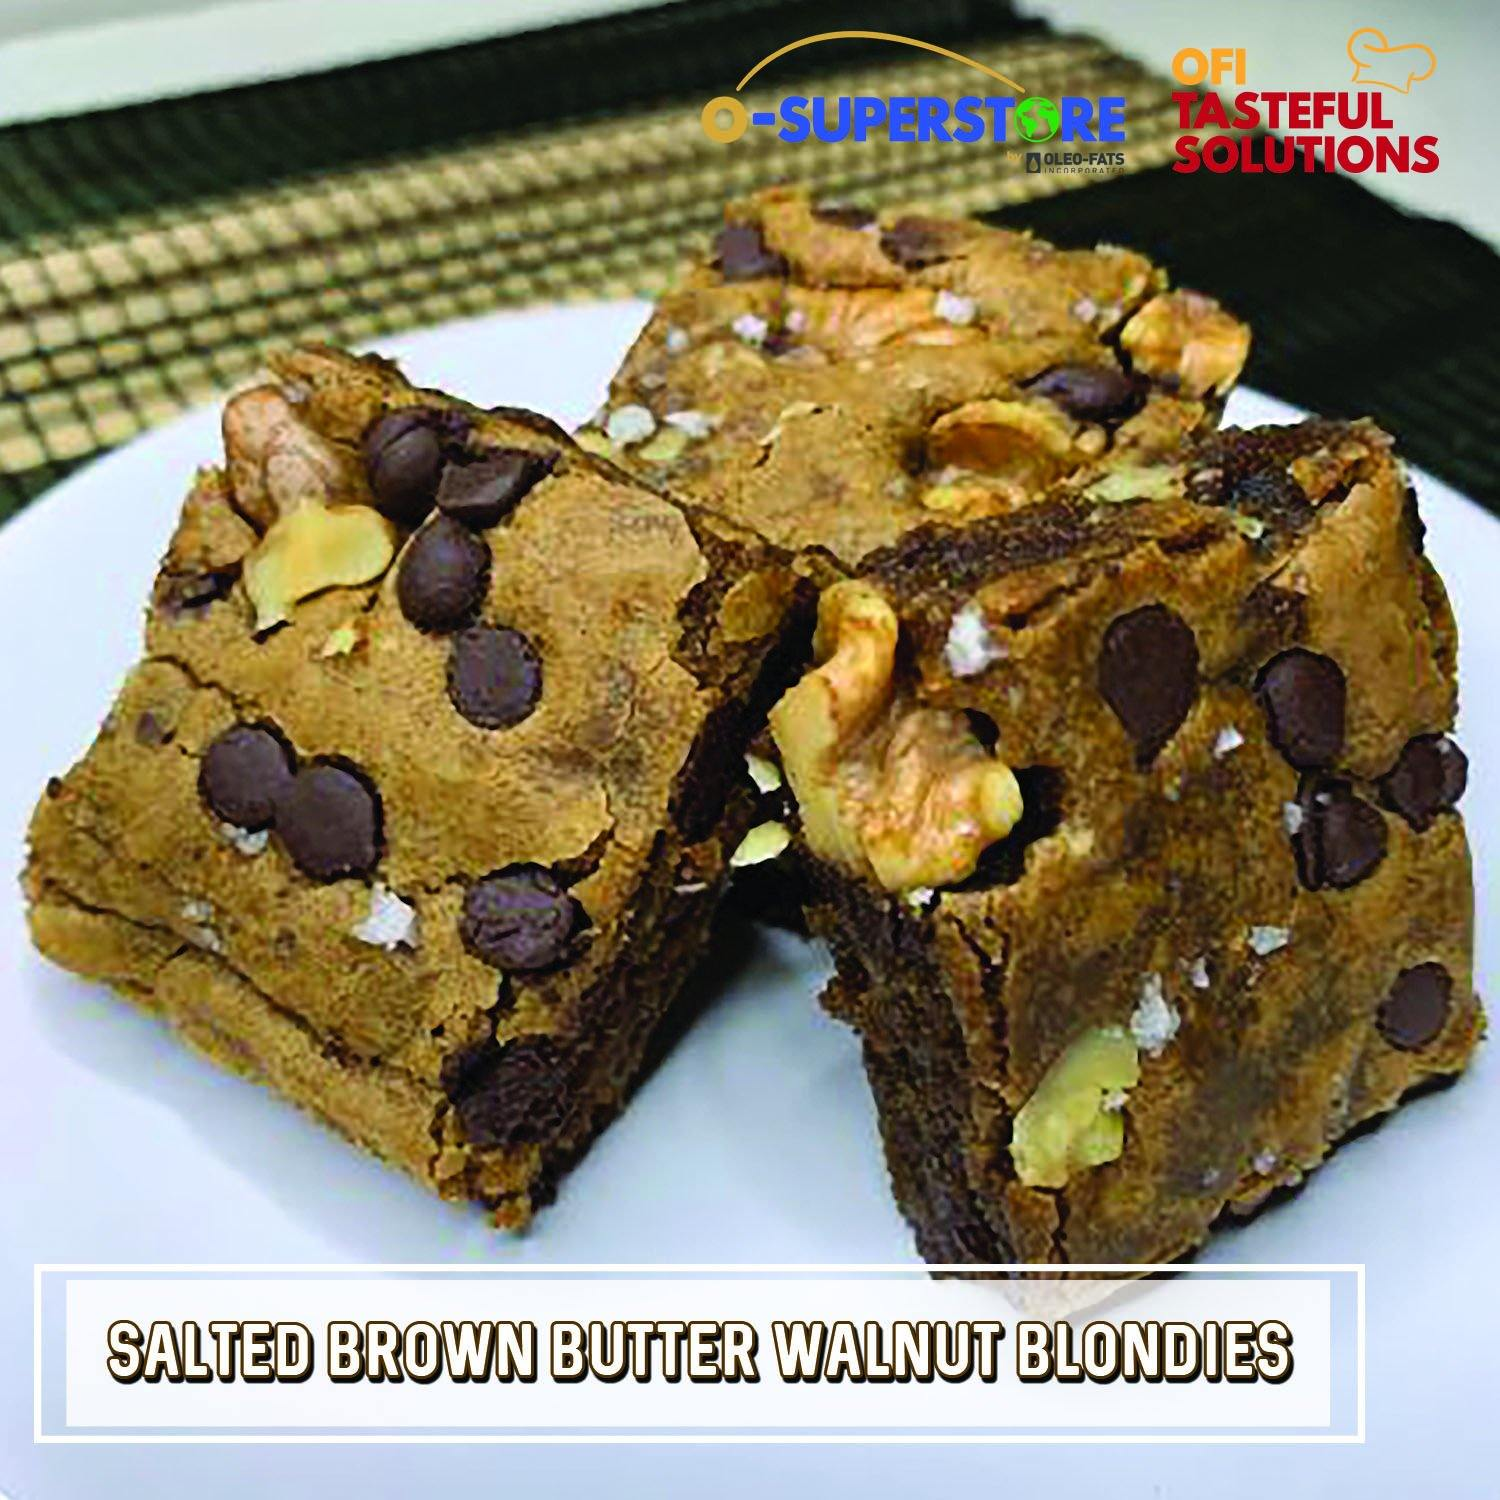 Salted Brown Butter Walnut Blondies - O-SUPERSTORE